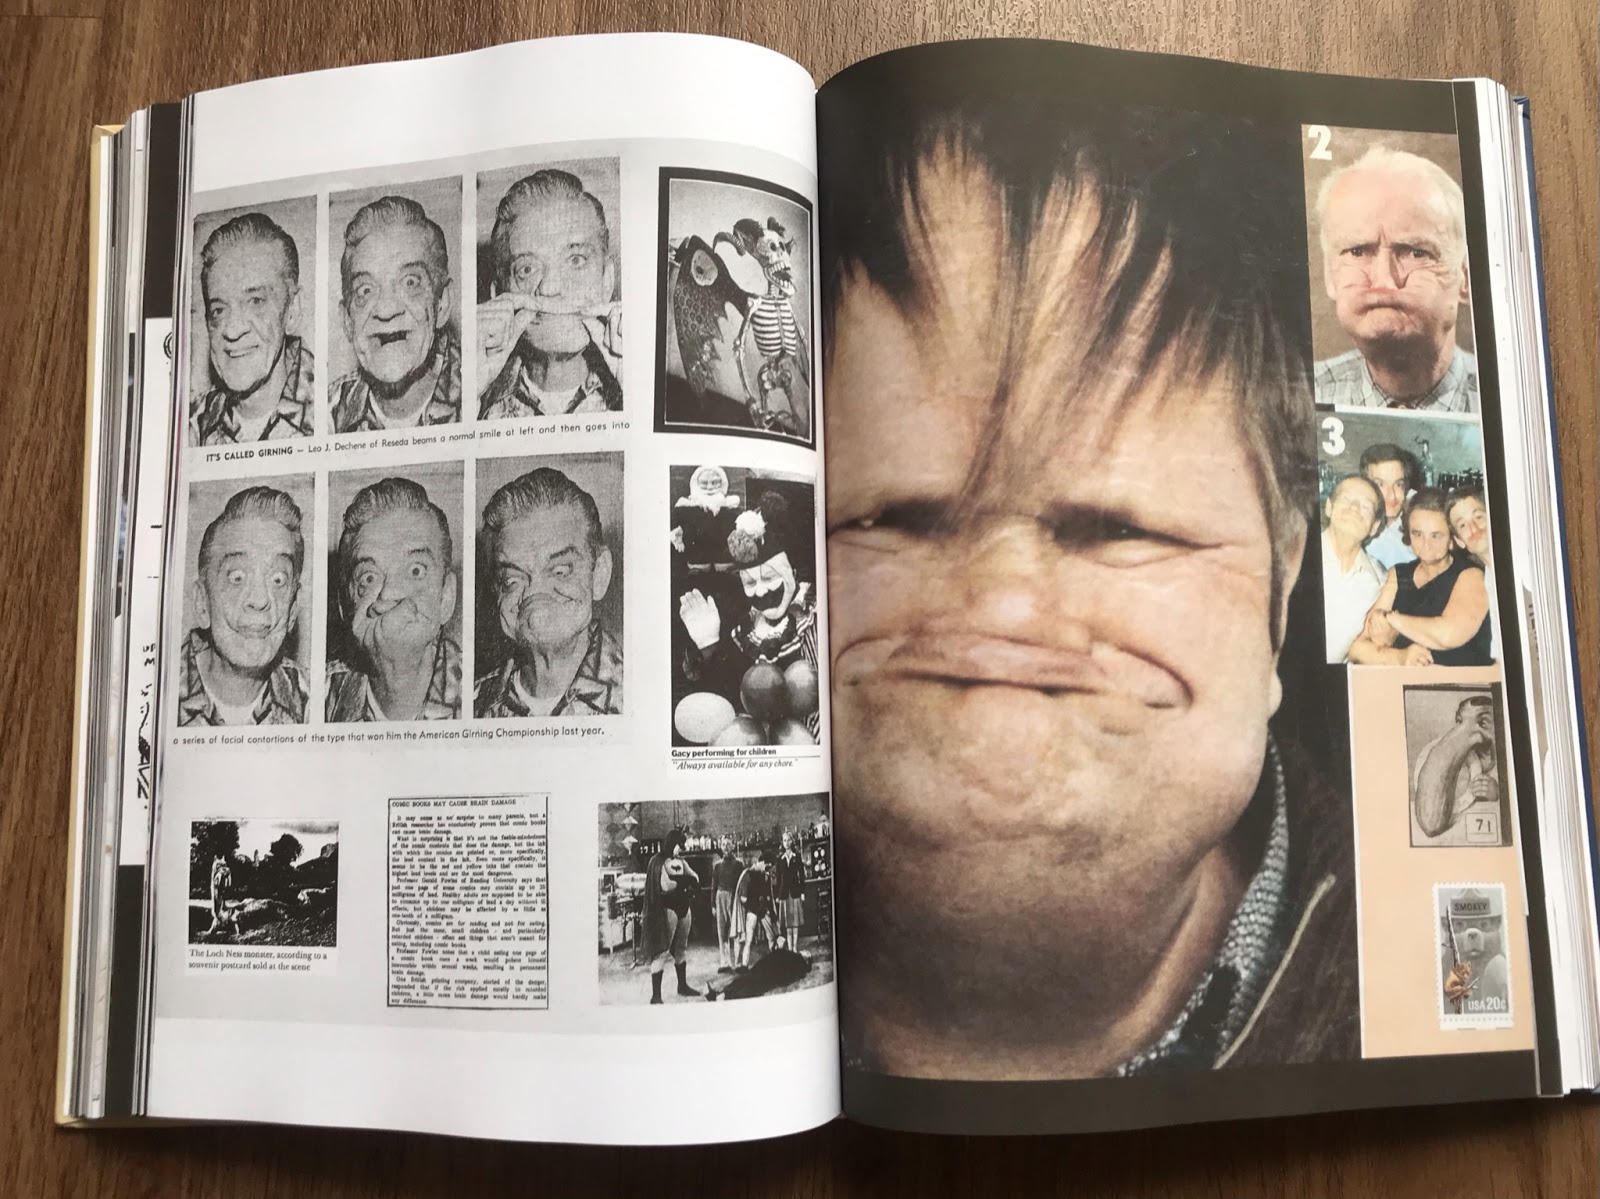 This 508-page collection of found art is a happy mutant's delight